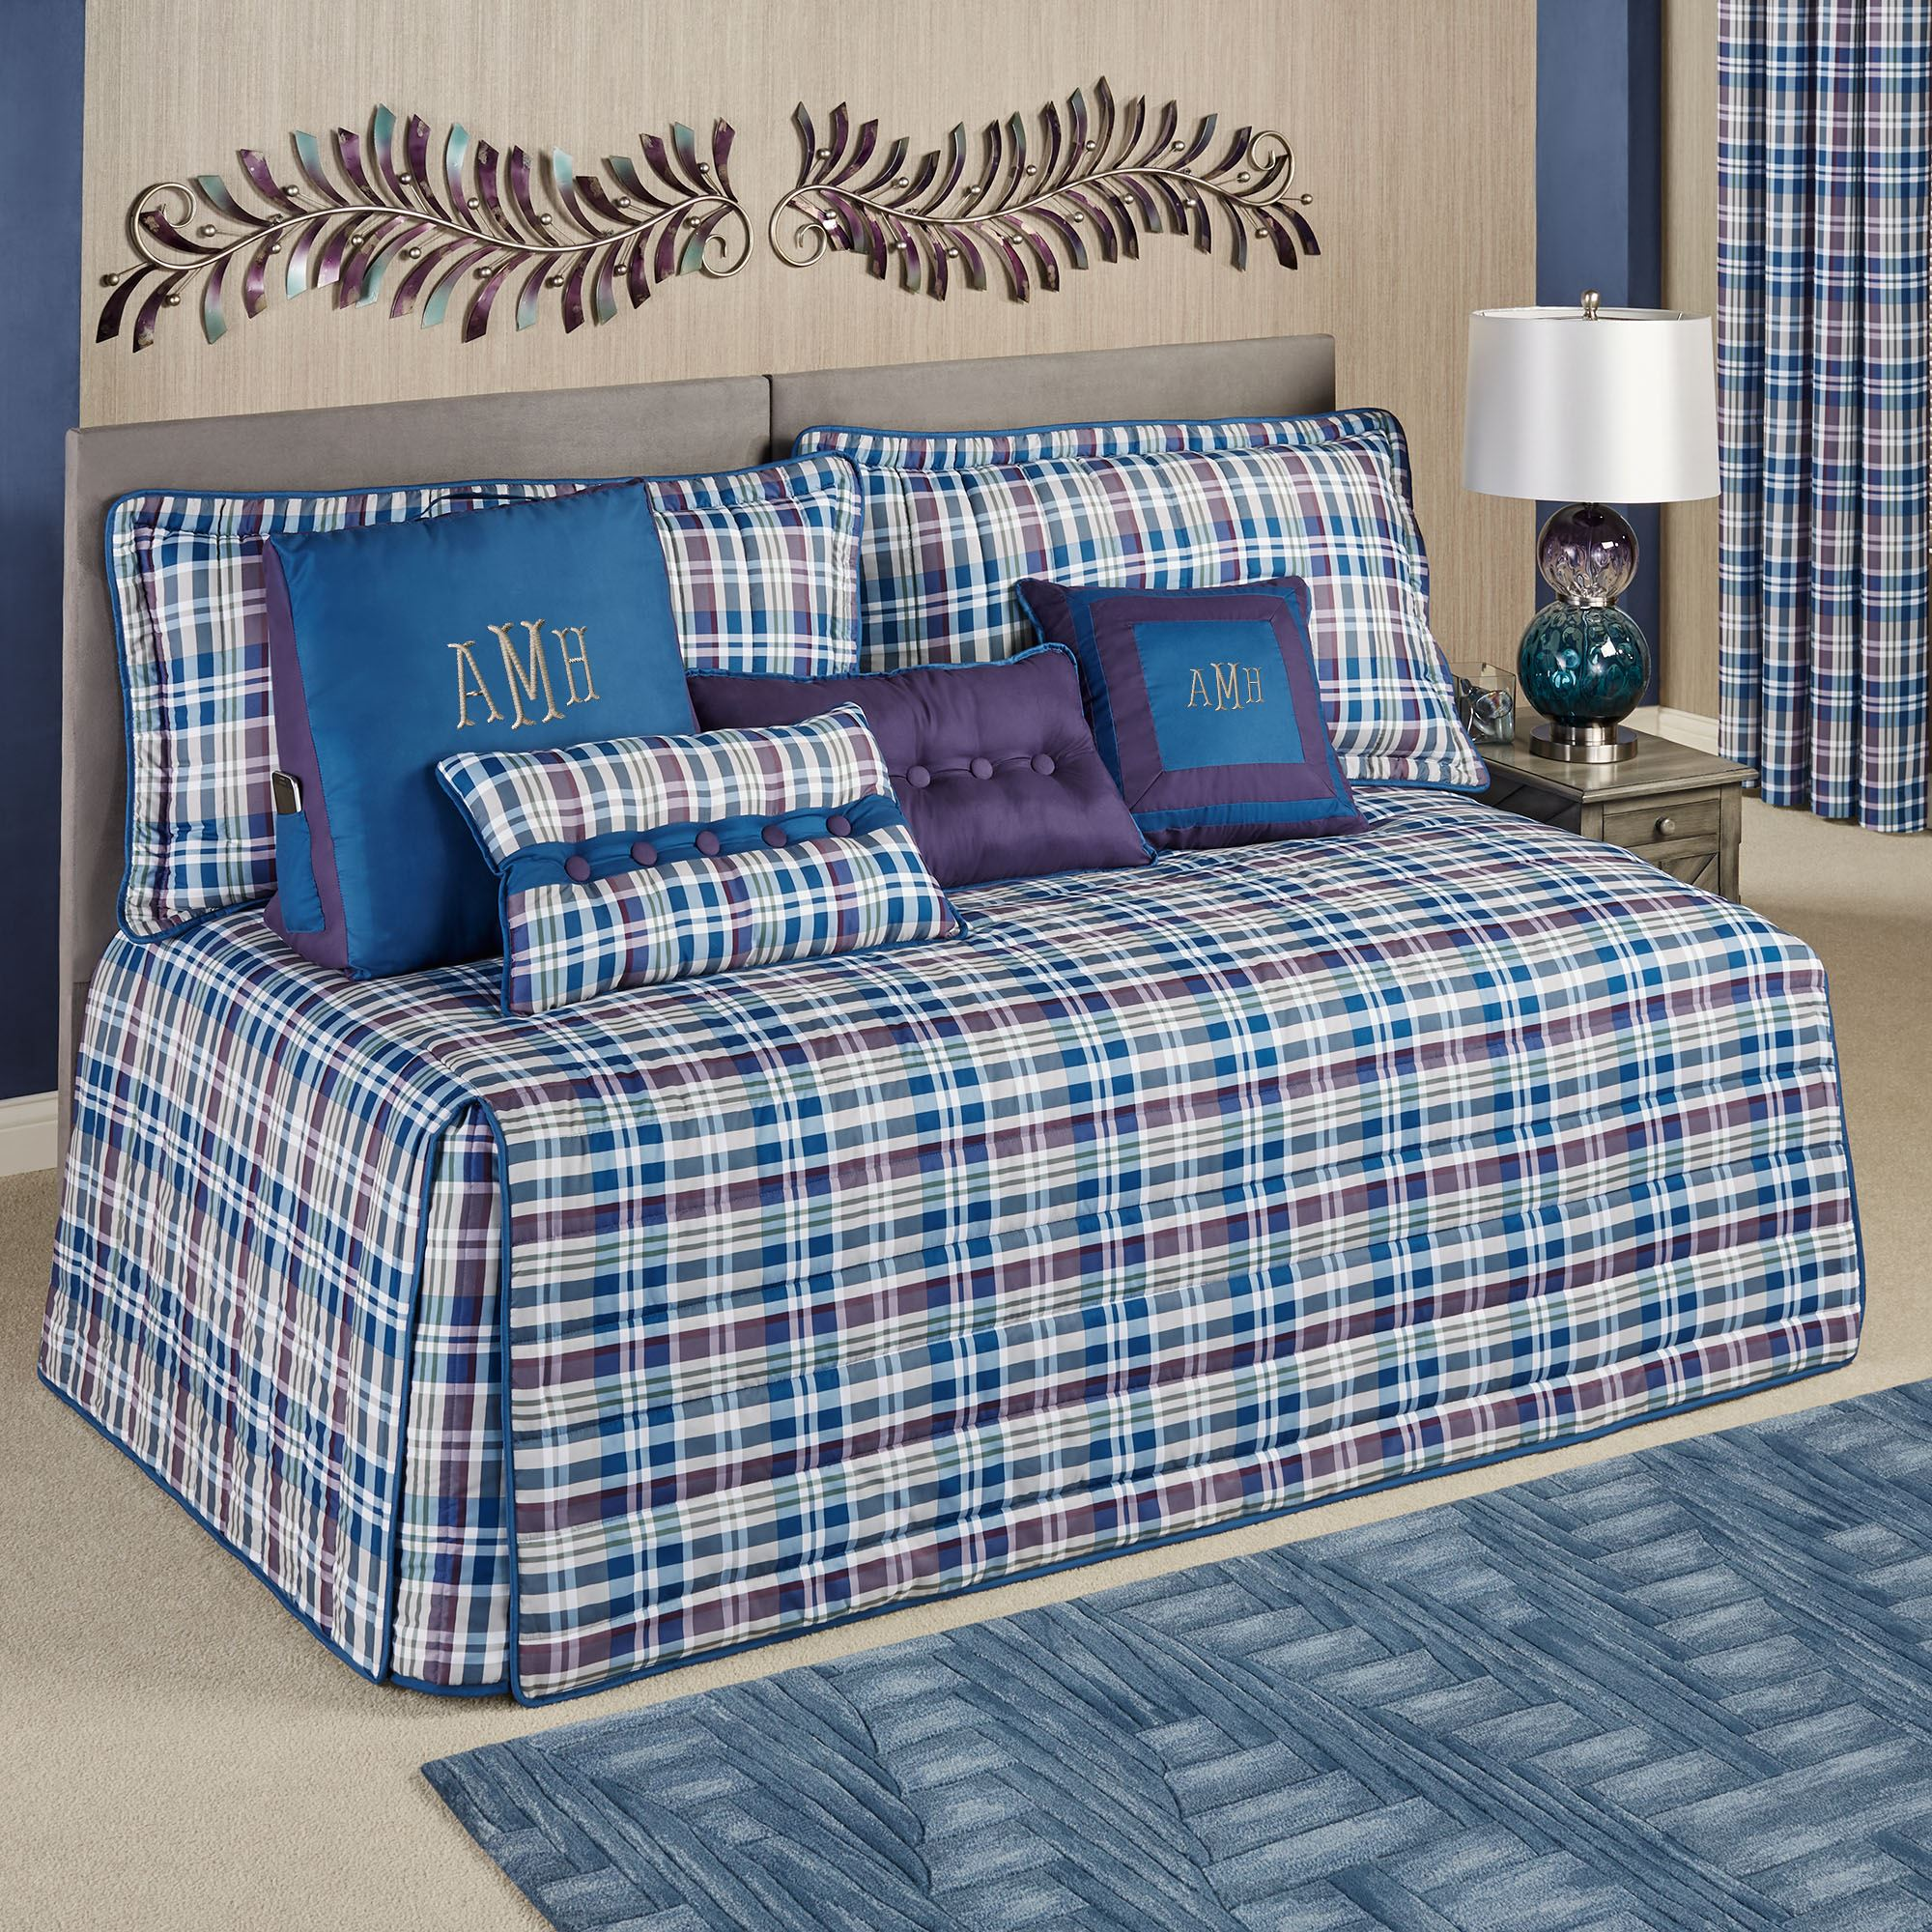 Stratton 3 Pc Plaid Daybed Bedding Set